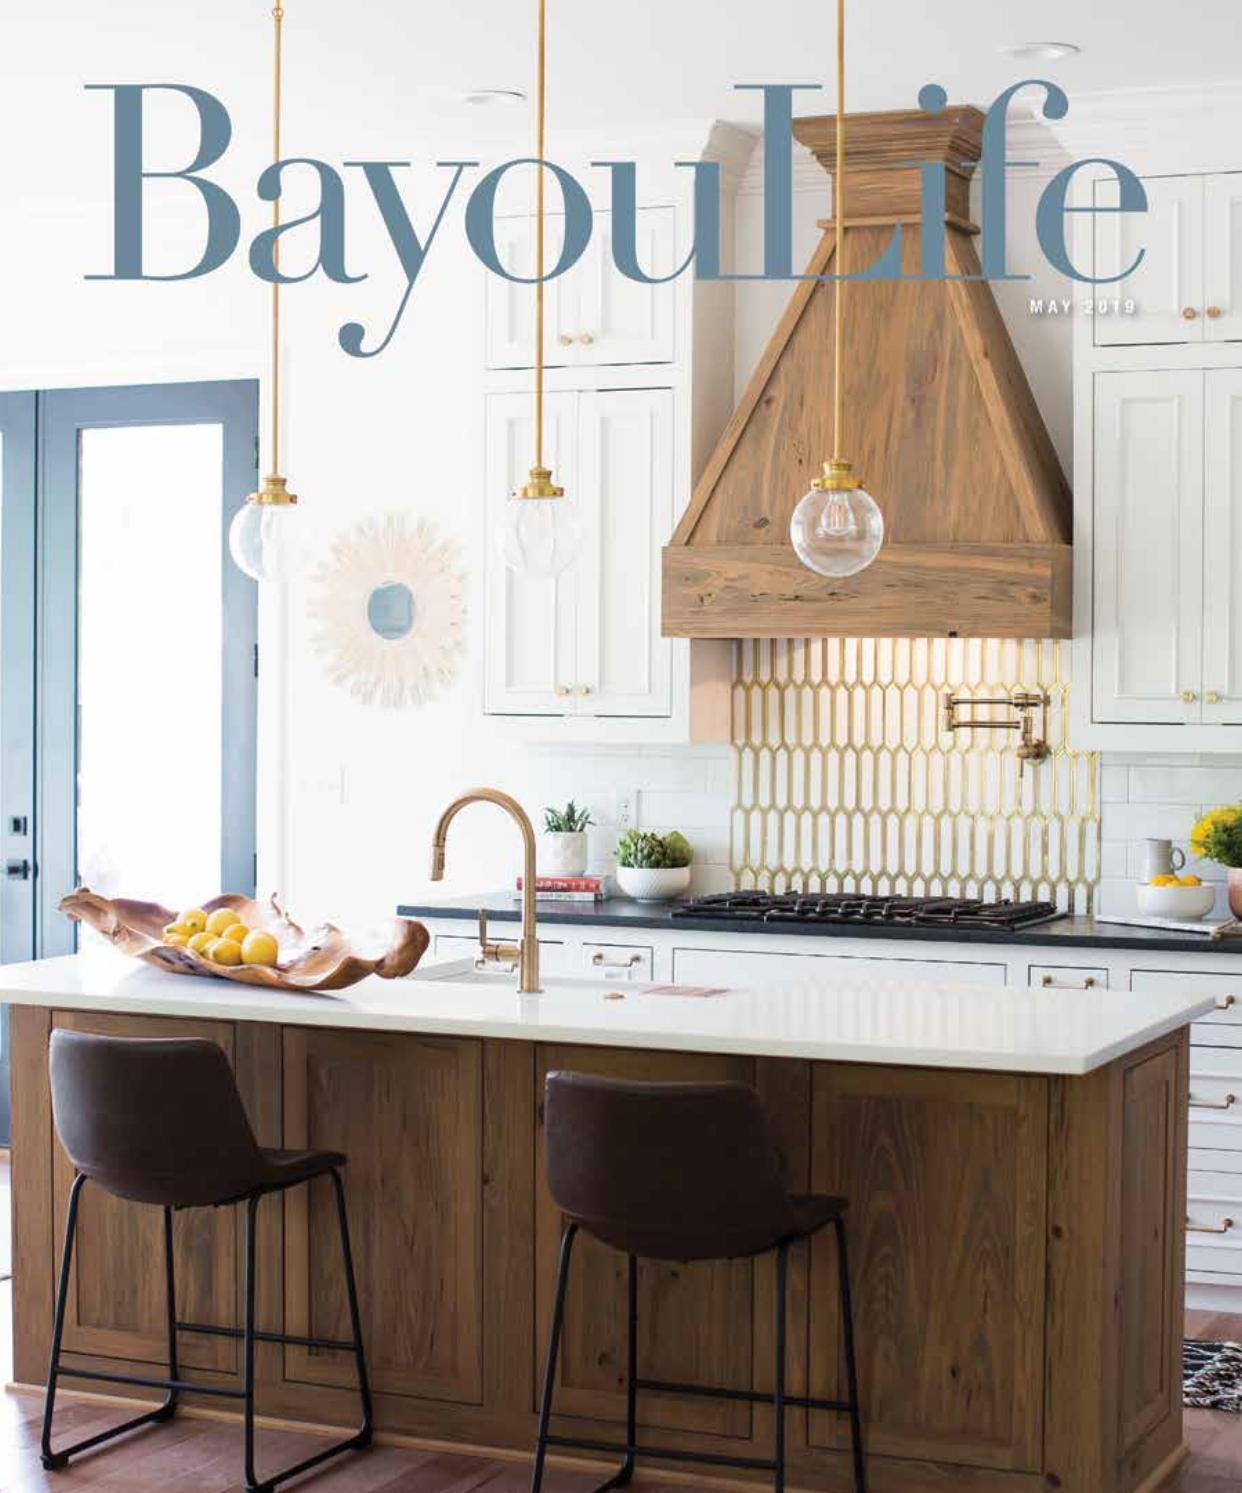 rainbow dream bar stool rainbow dream fantasy stool barstool home decor stools BayouLife Magazine May 2019 by BayouLife Magazine - issuu